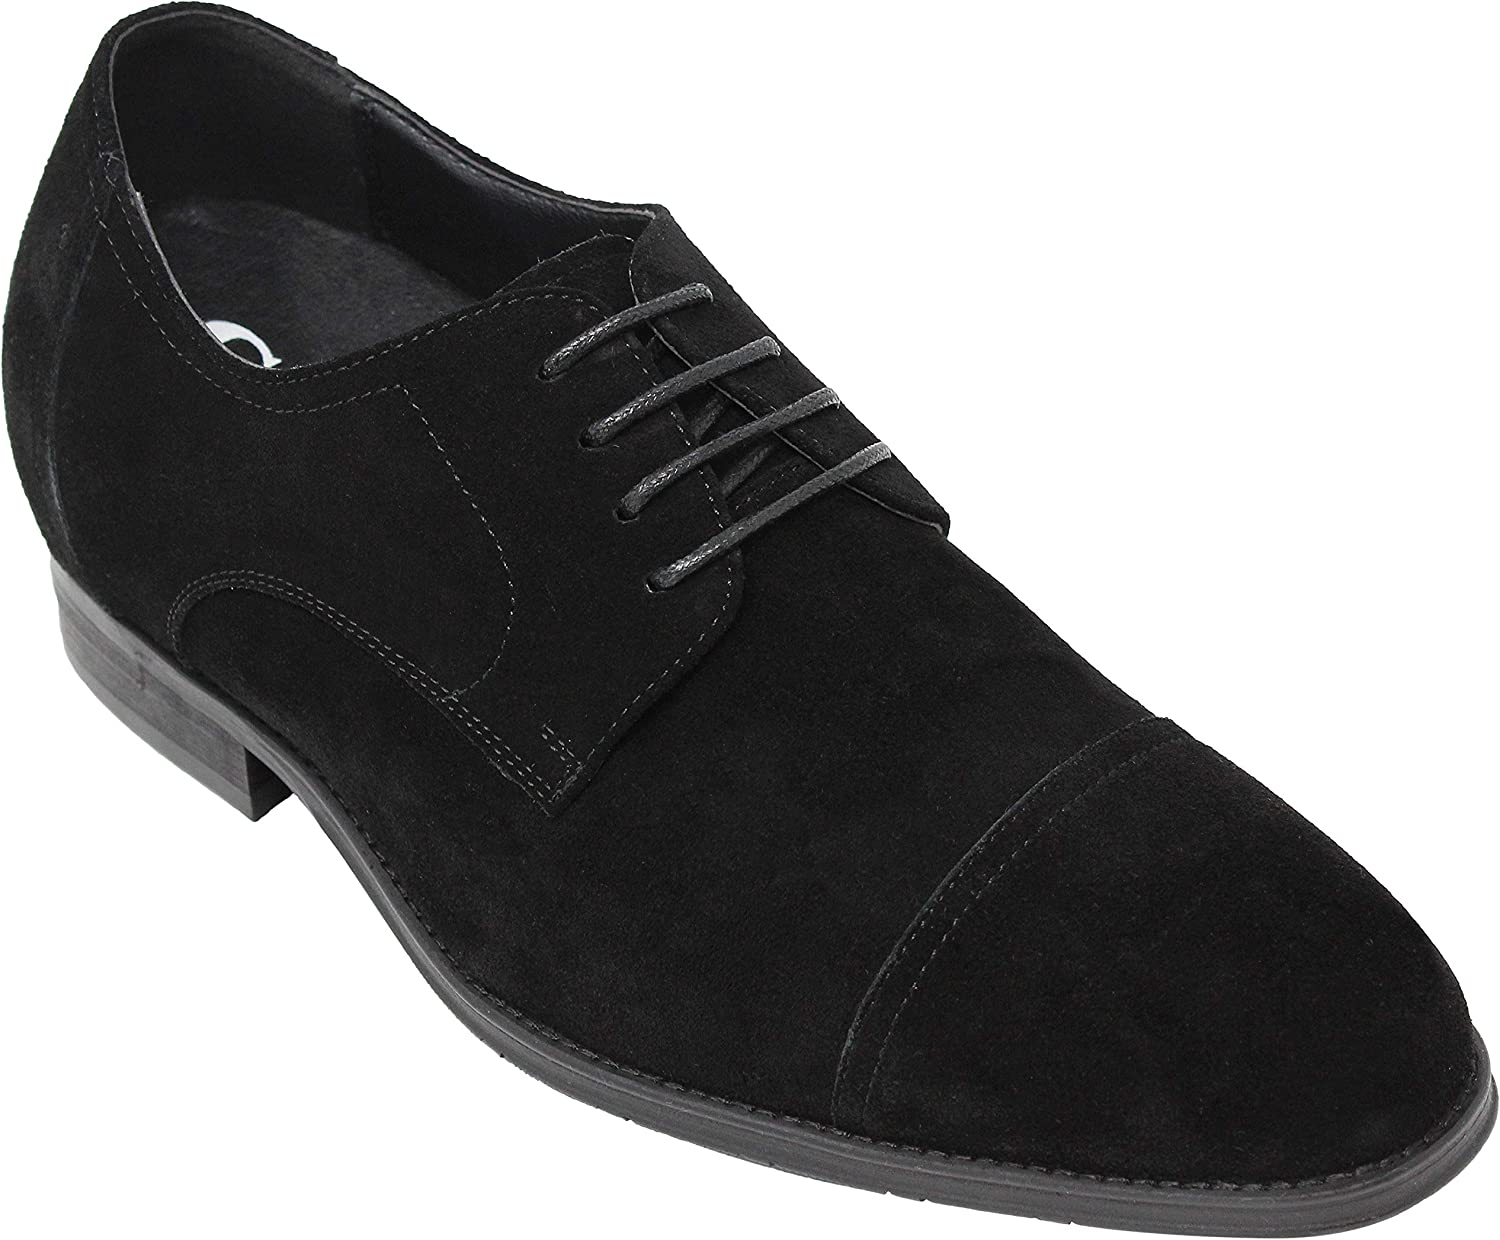 CALTO Men's Invisible Height Increasing Elevator Shoes - Black Suede Leather Lace-up Formal Oxfords - 3 Inches Taller - Y40215